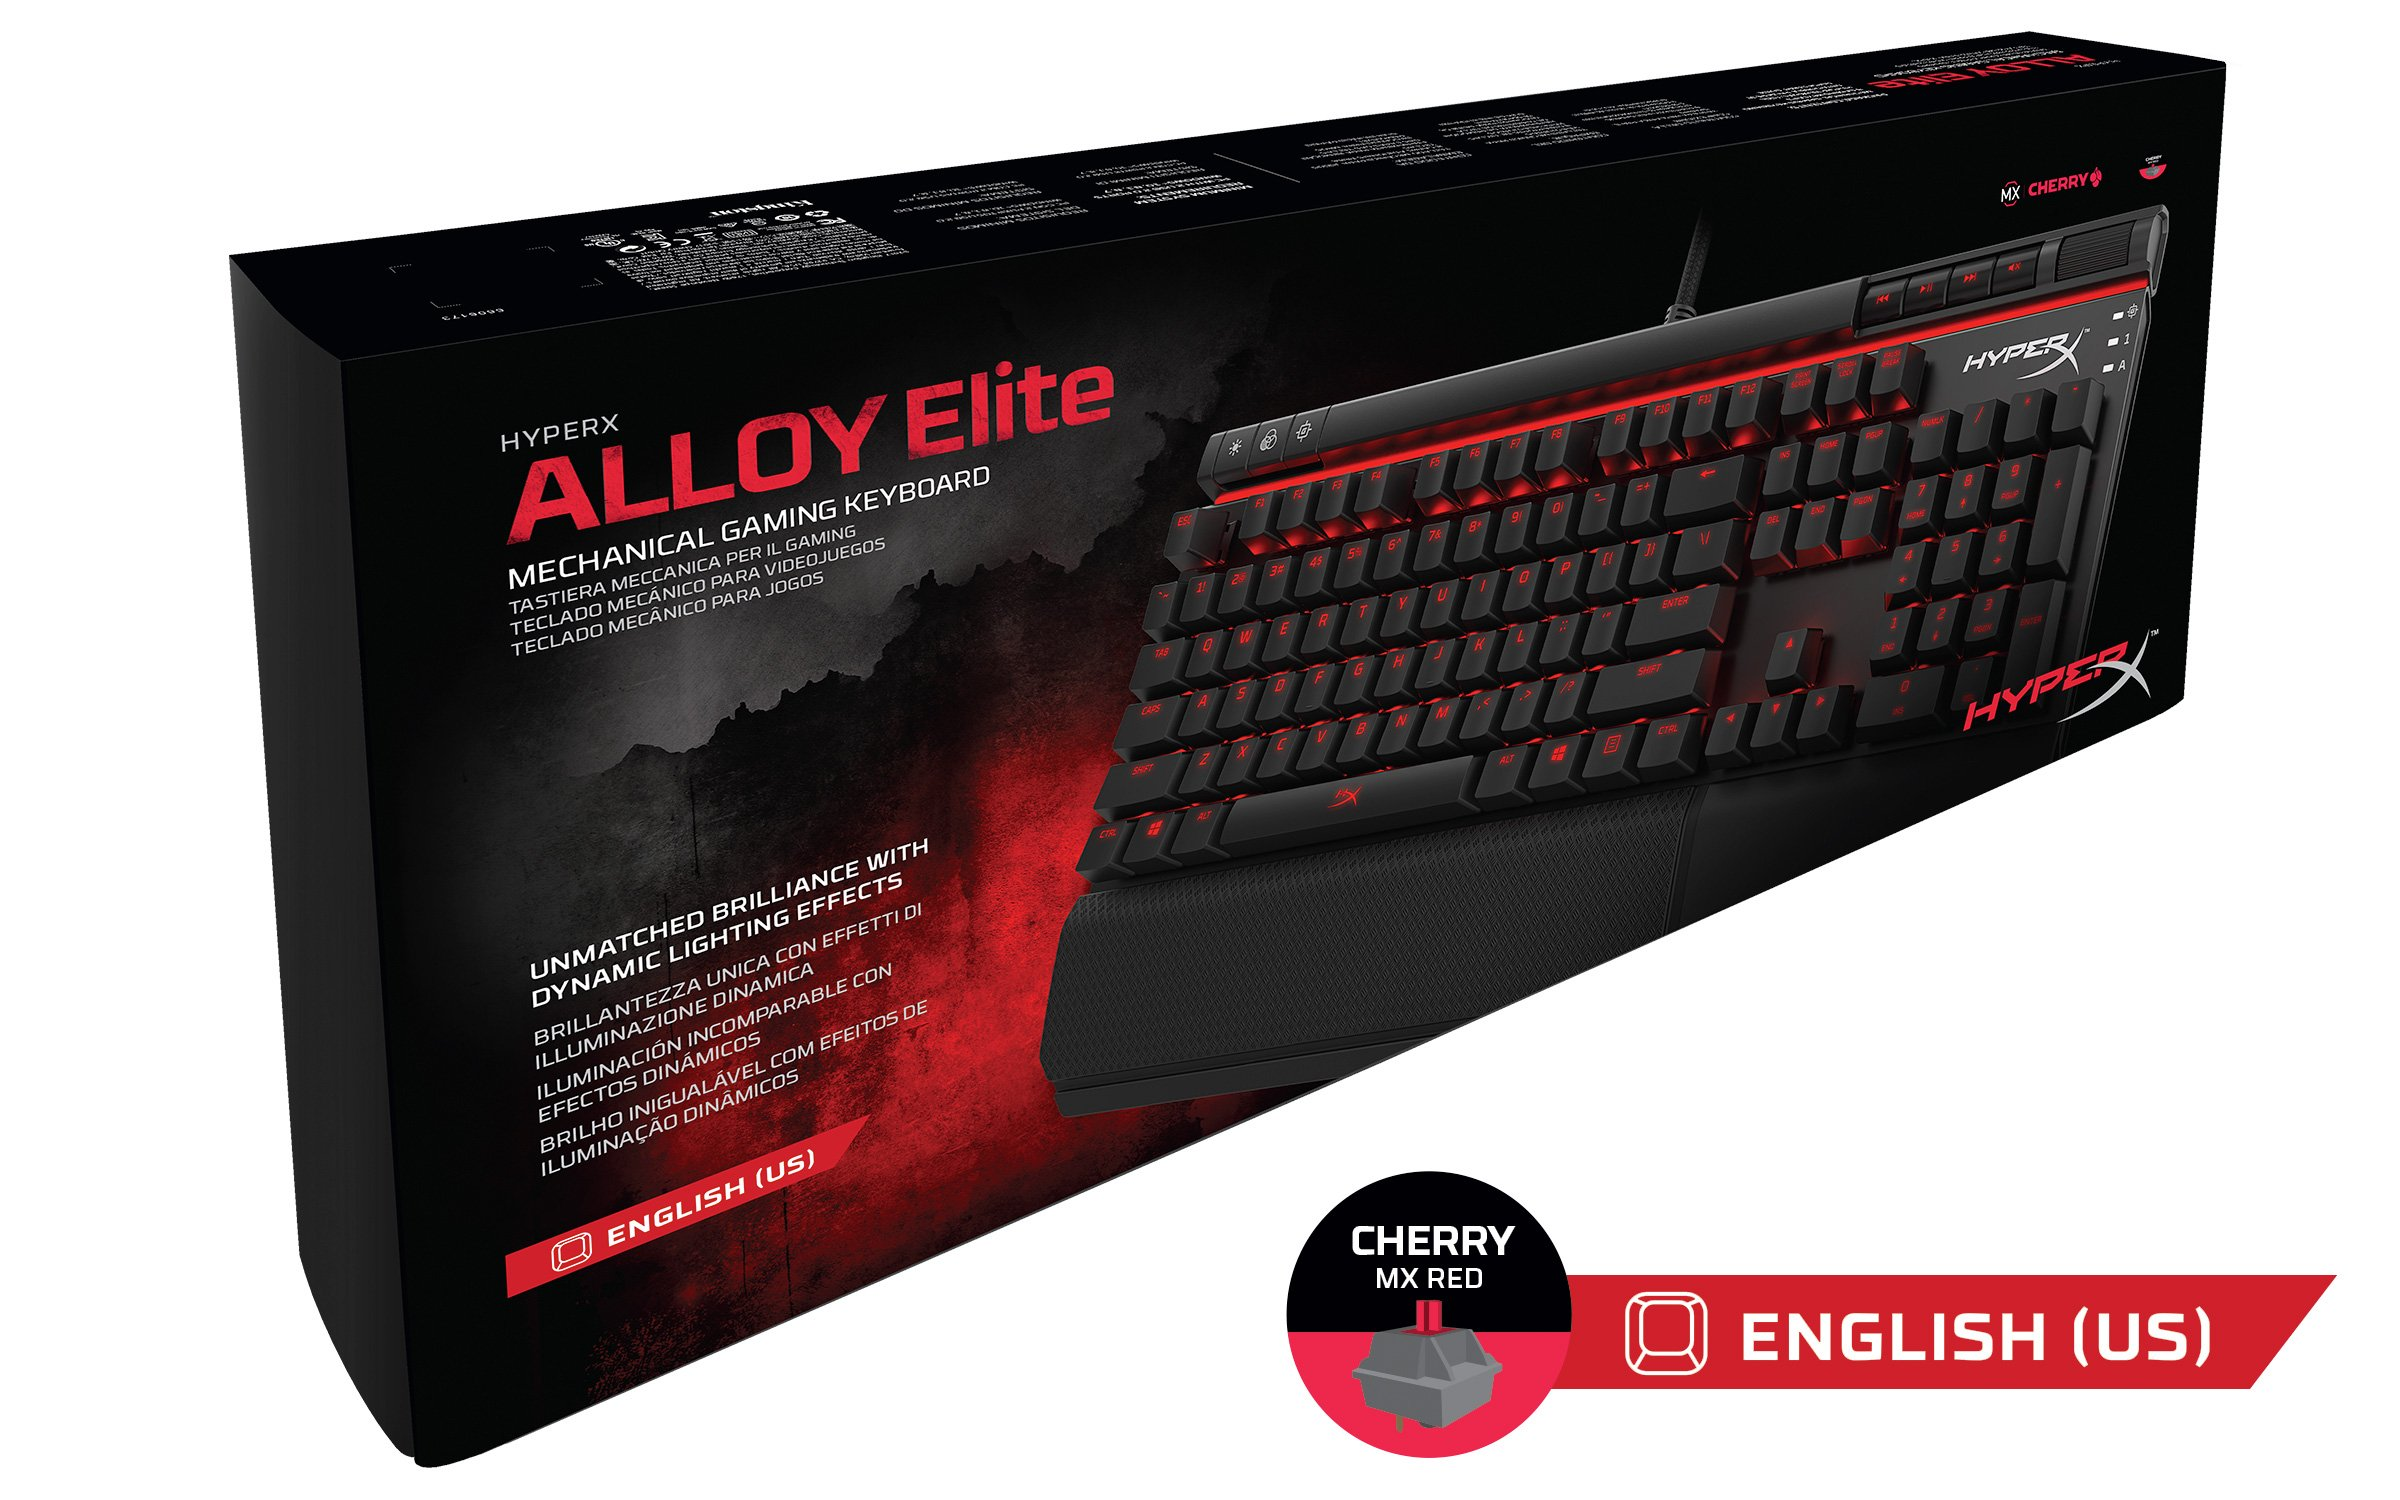 HyperX Alloy Elite Mechanical Gaming Keyboard, Cherry MX Red, Red LED (HX-KB2RD1-US/R1) by HyperX (Image #5)